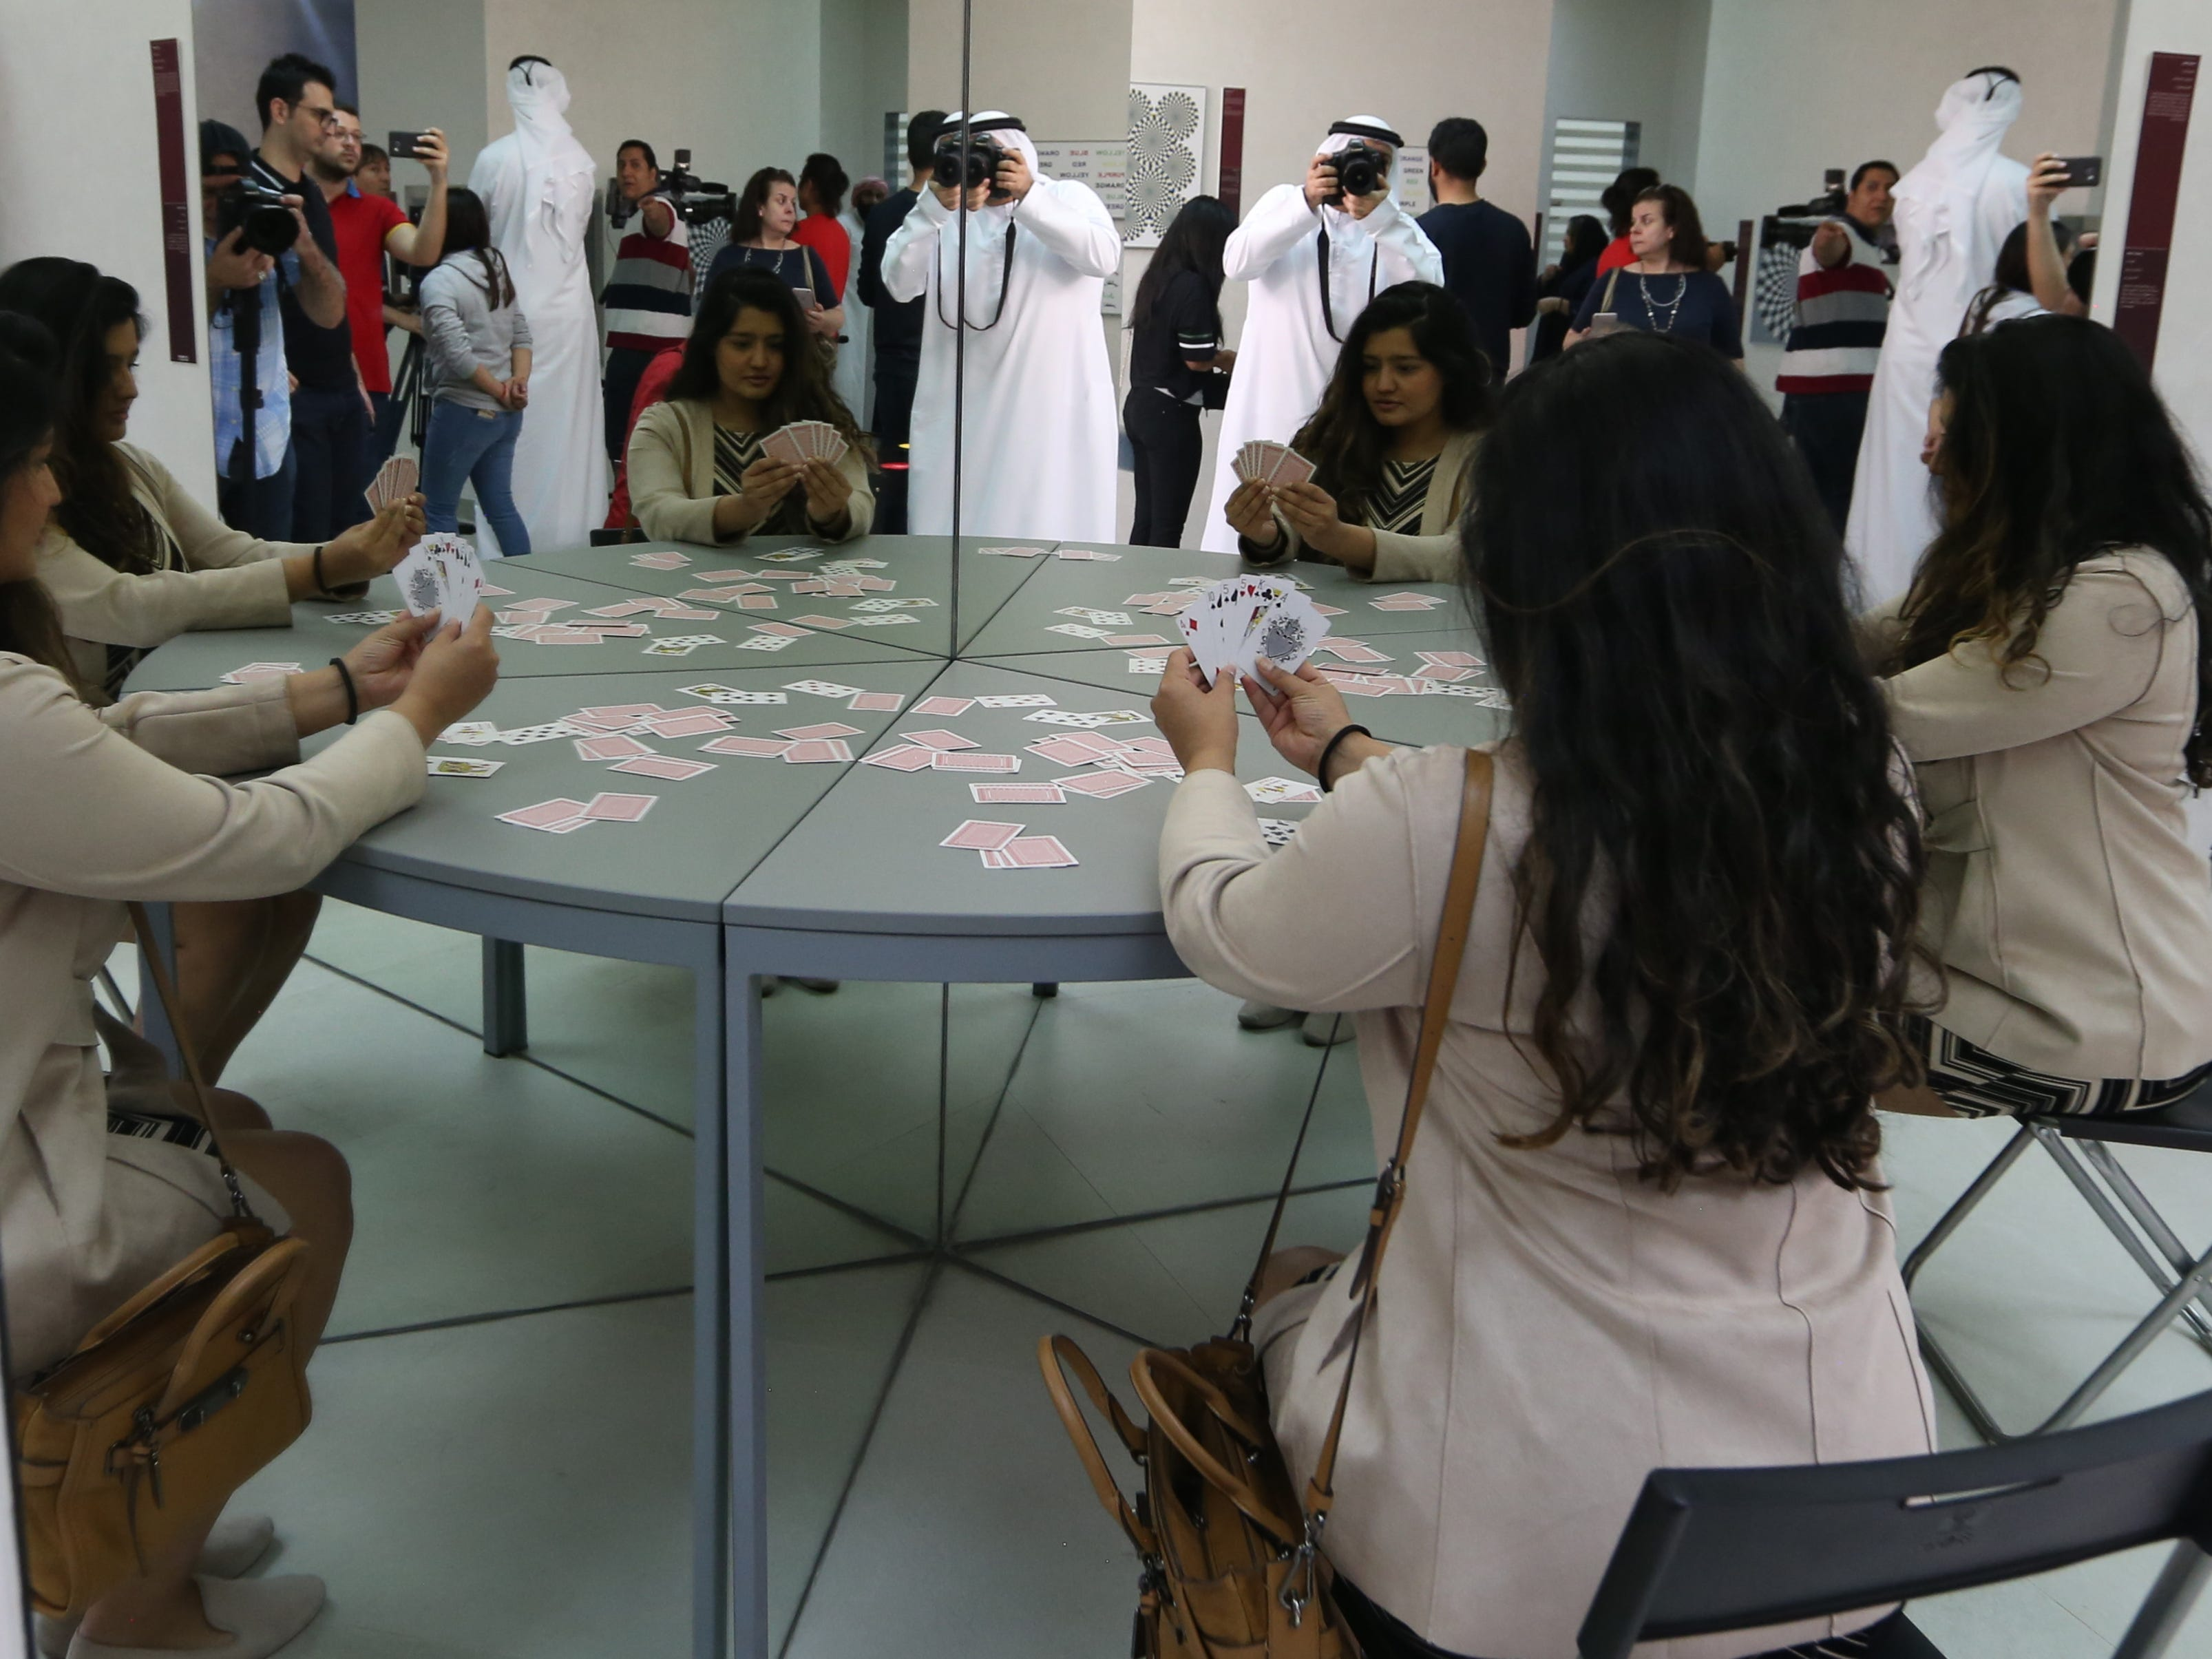 People inspect the cloning table displayed at the Museum of Illusions at Al Seef near the Dubai Creek in Gulf emirate of Dubai, United Arab Emirates on  Sept. 9, 2018.